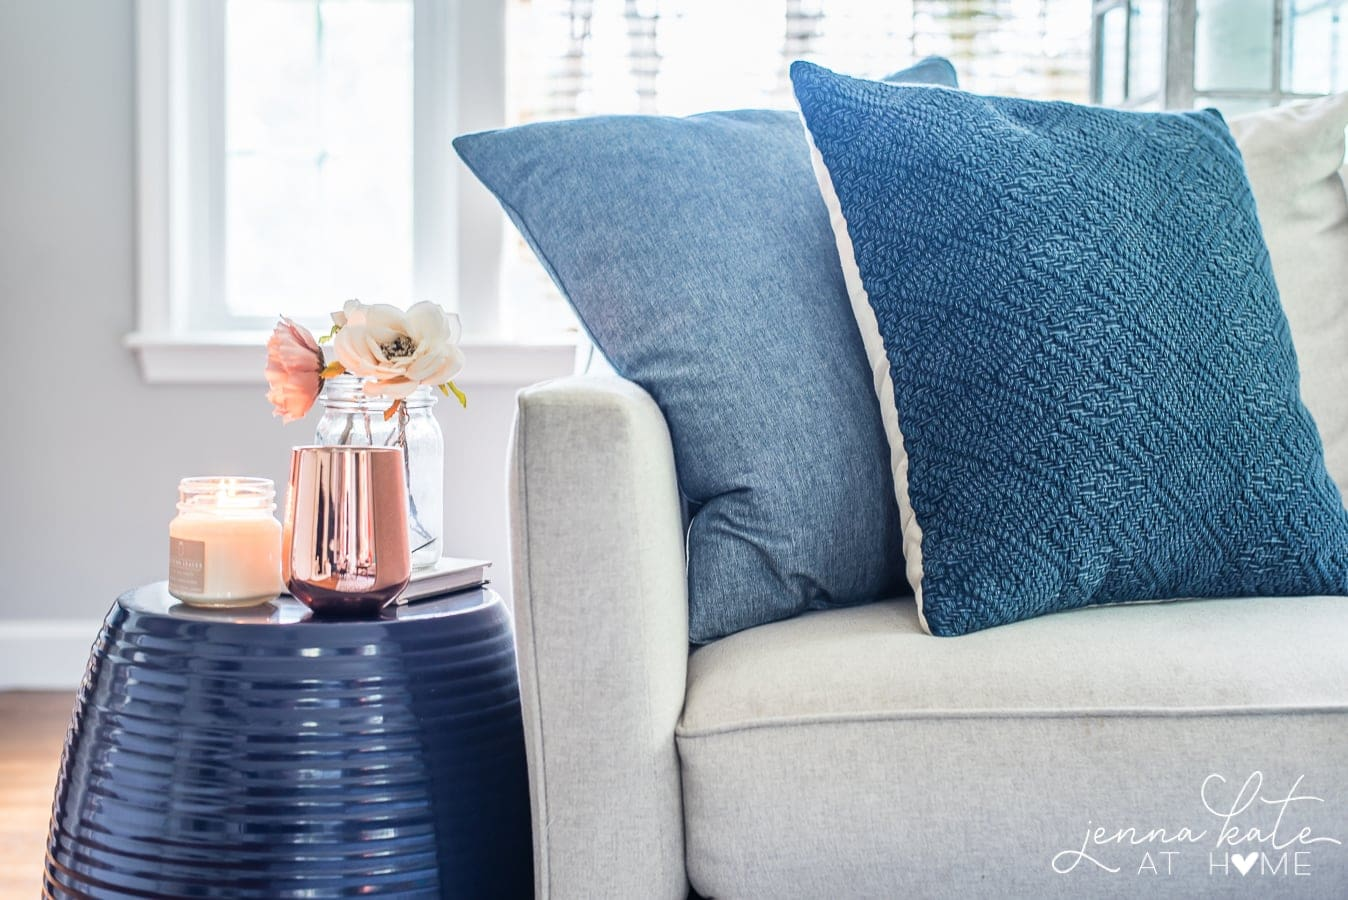 copper and navy is the perfect color combination for fall decor